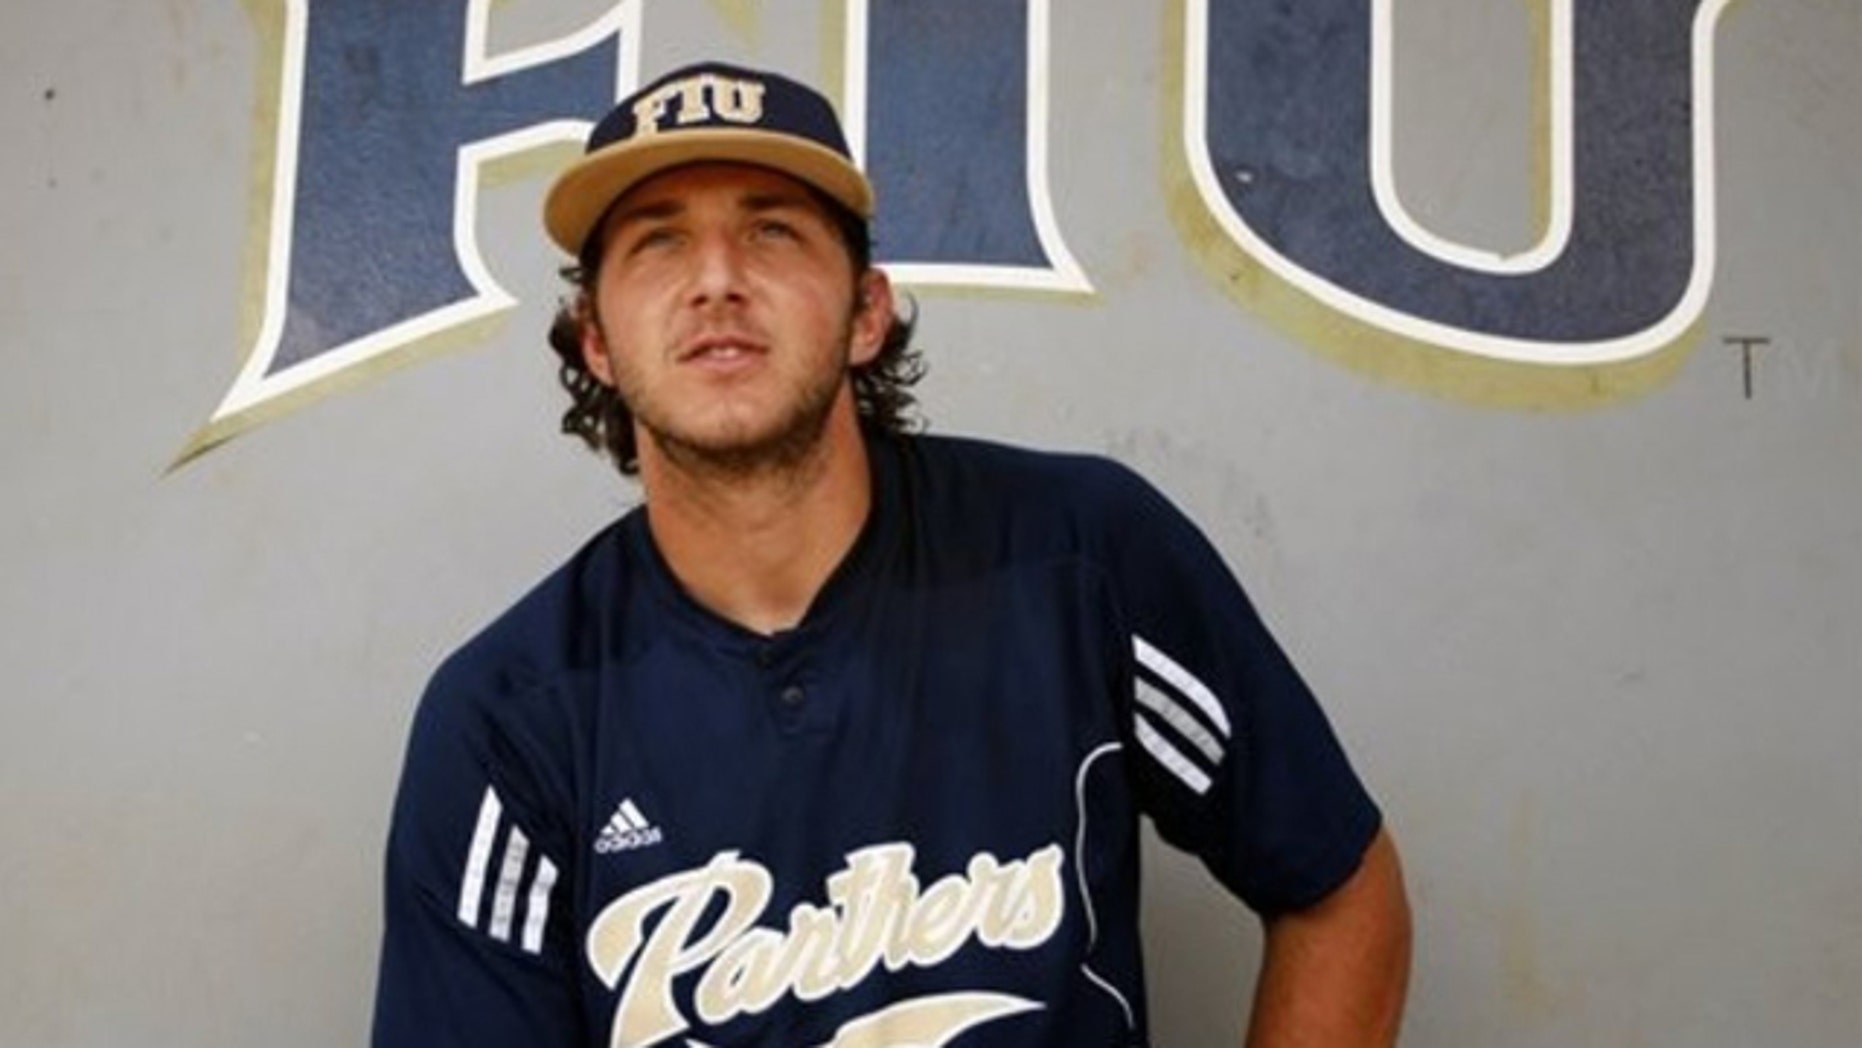 Shortstop Garrett Wittels will be in the FIU lineup when their season begins on Friday night, despite unresolved legal issues stemming from a Bahamas rape charge.